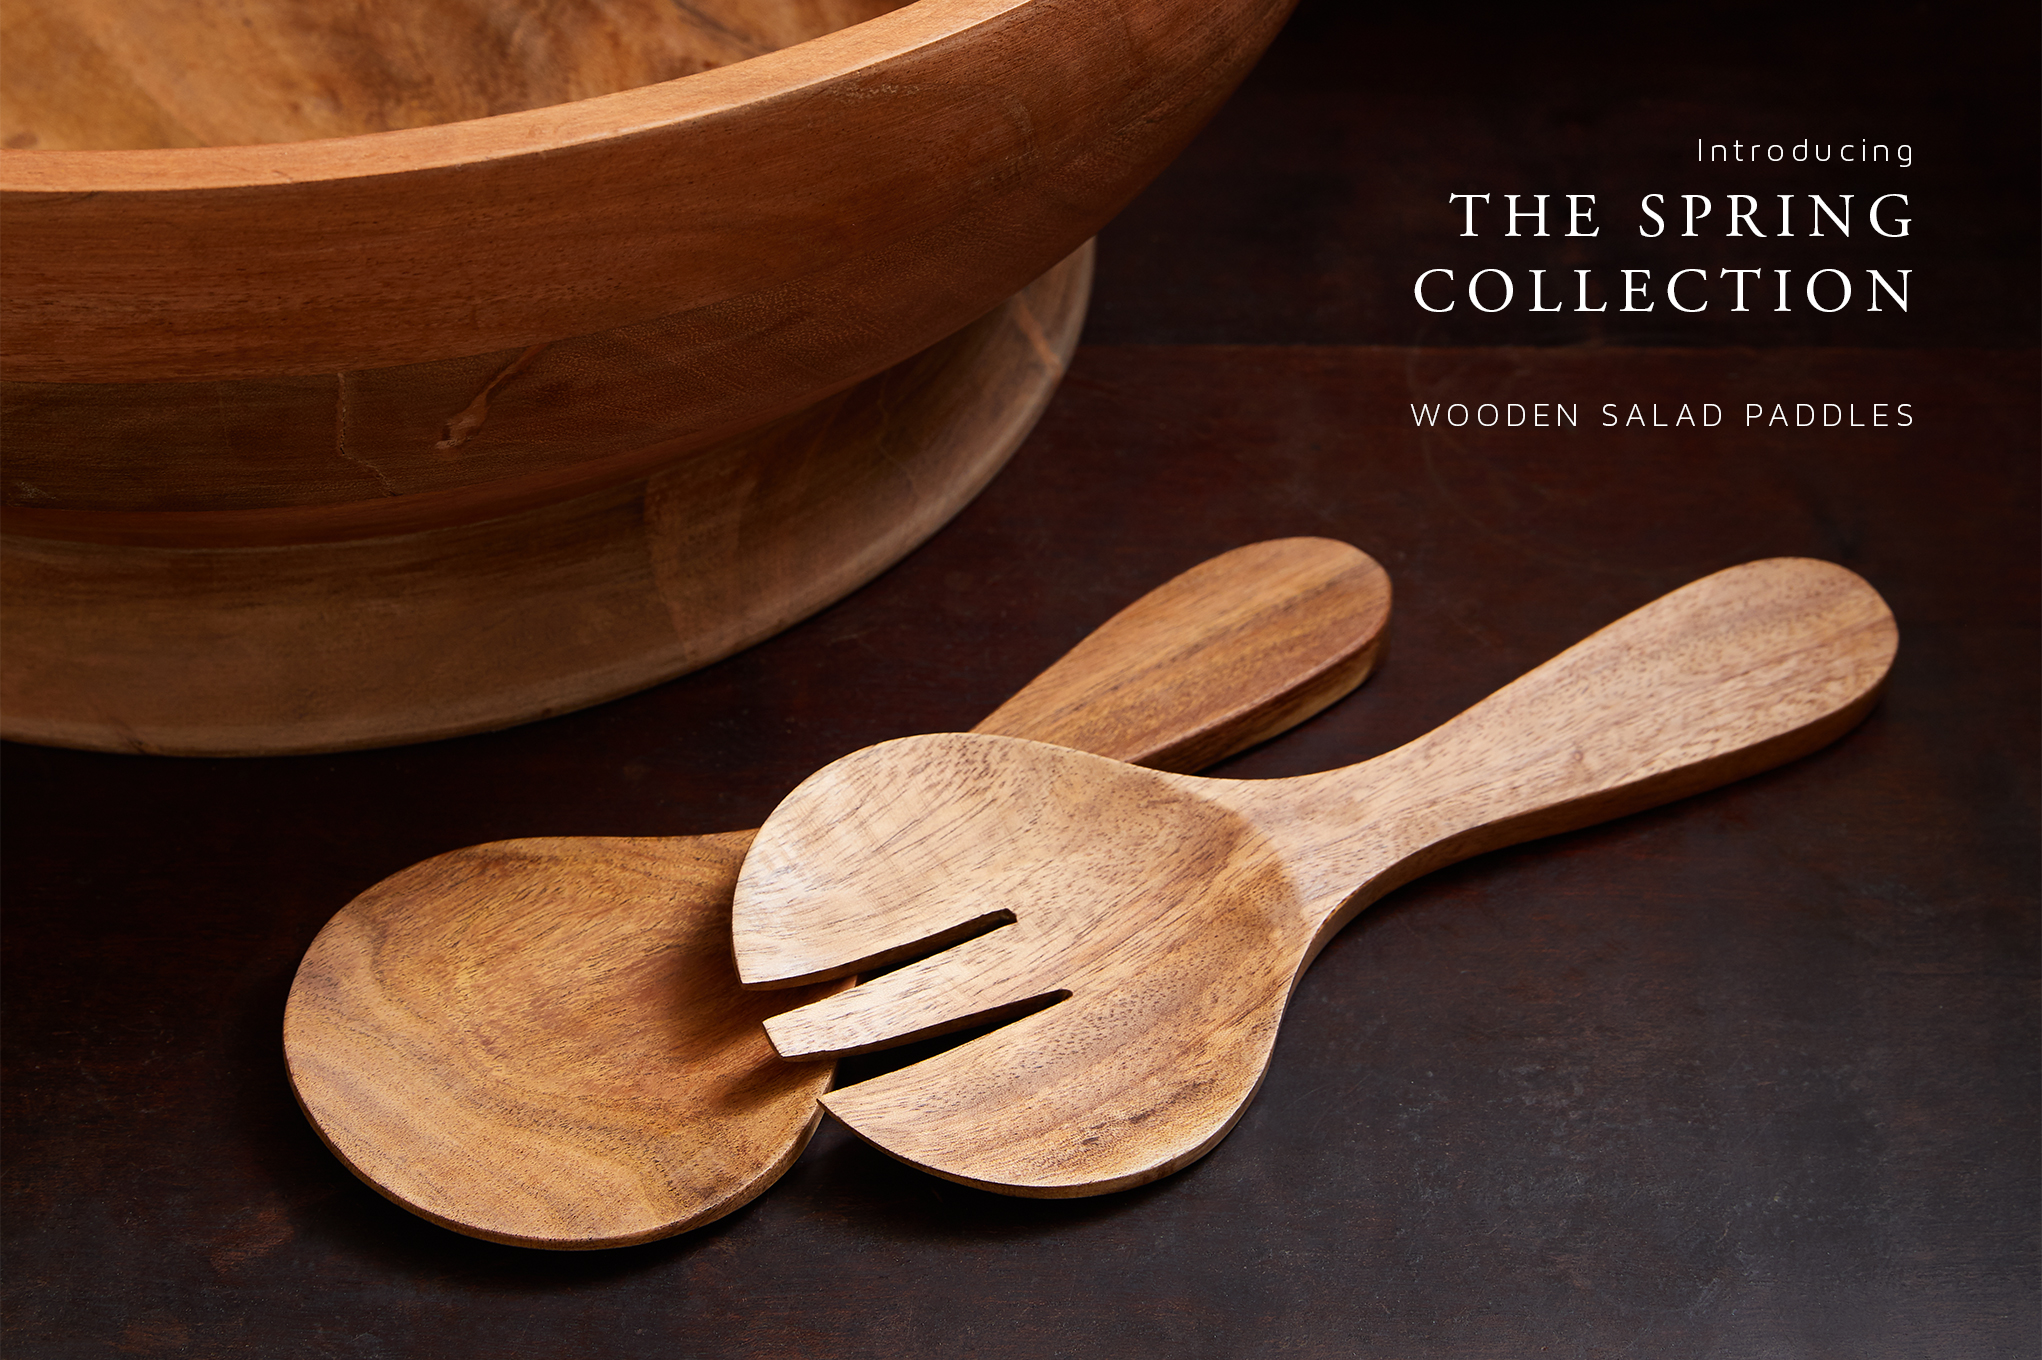 Introducing the Spring Collection: Acacia Wooden Salad Paddles